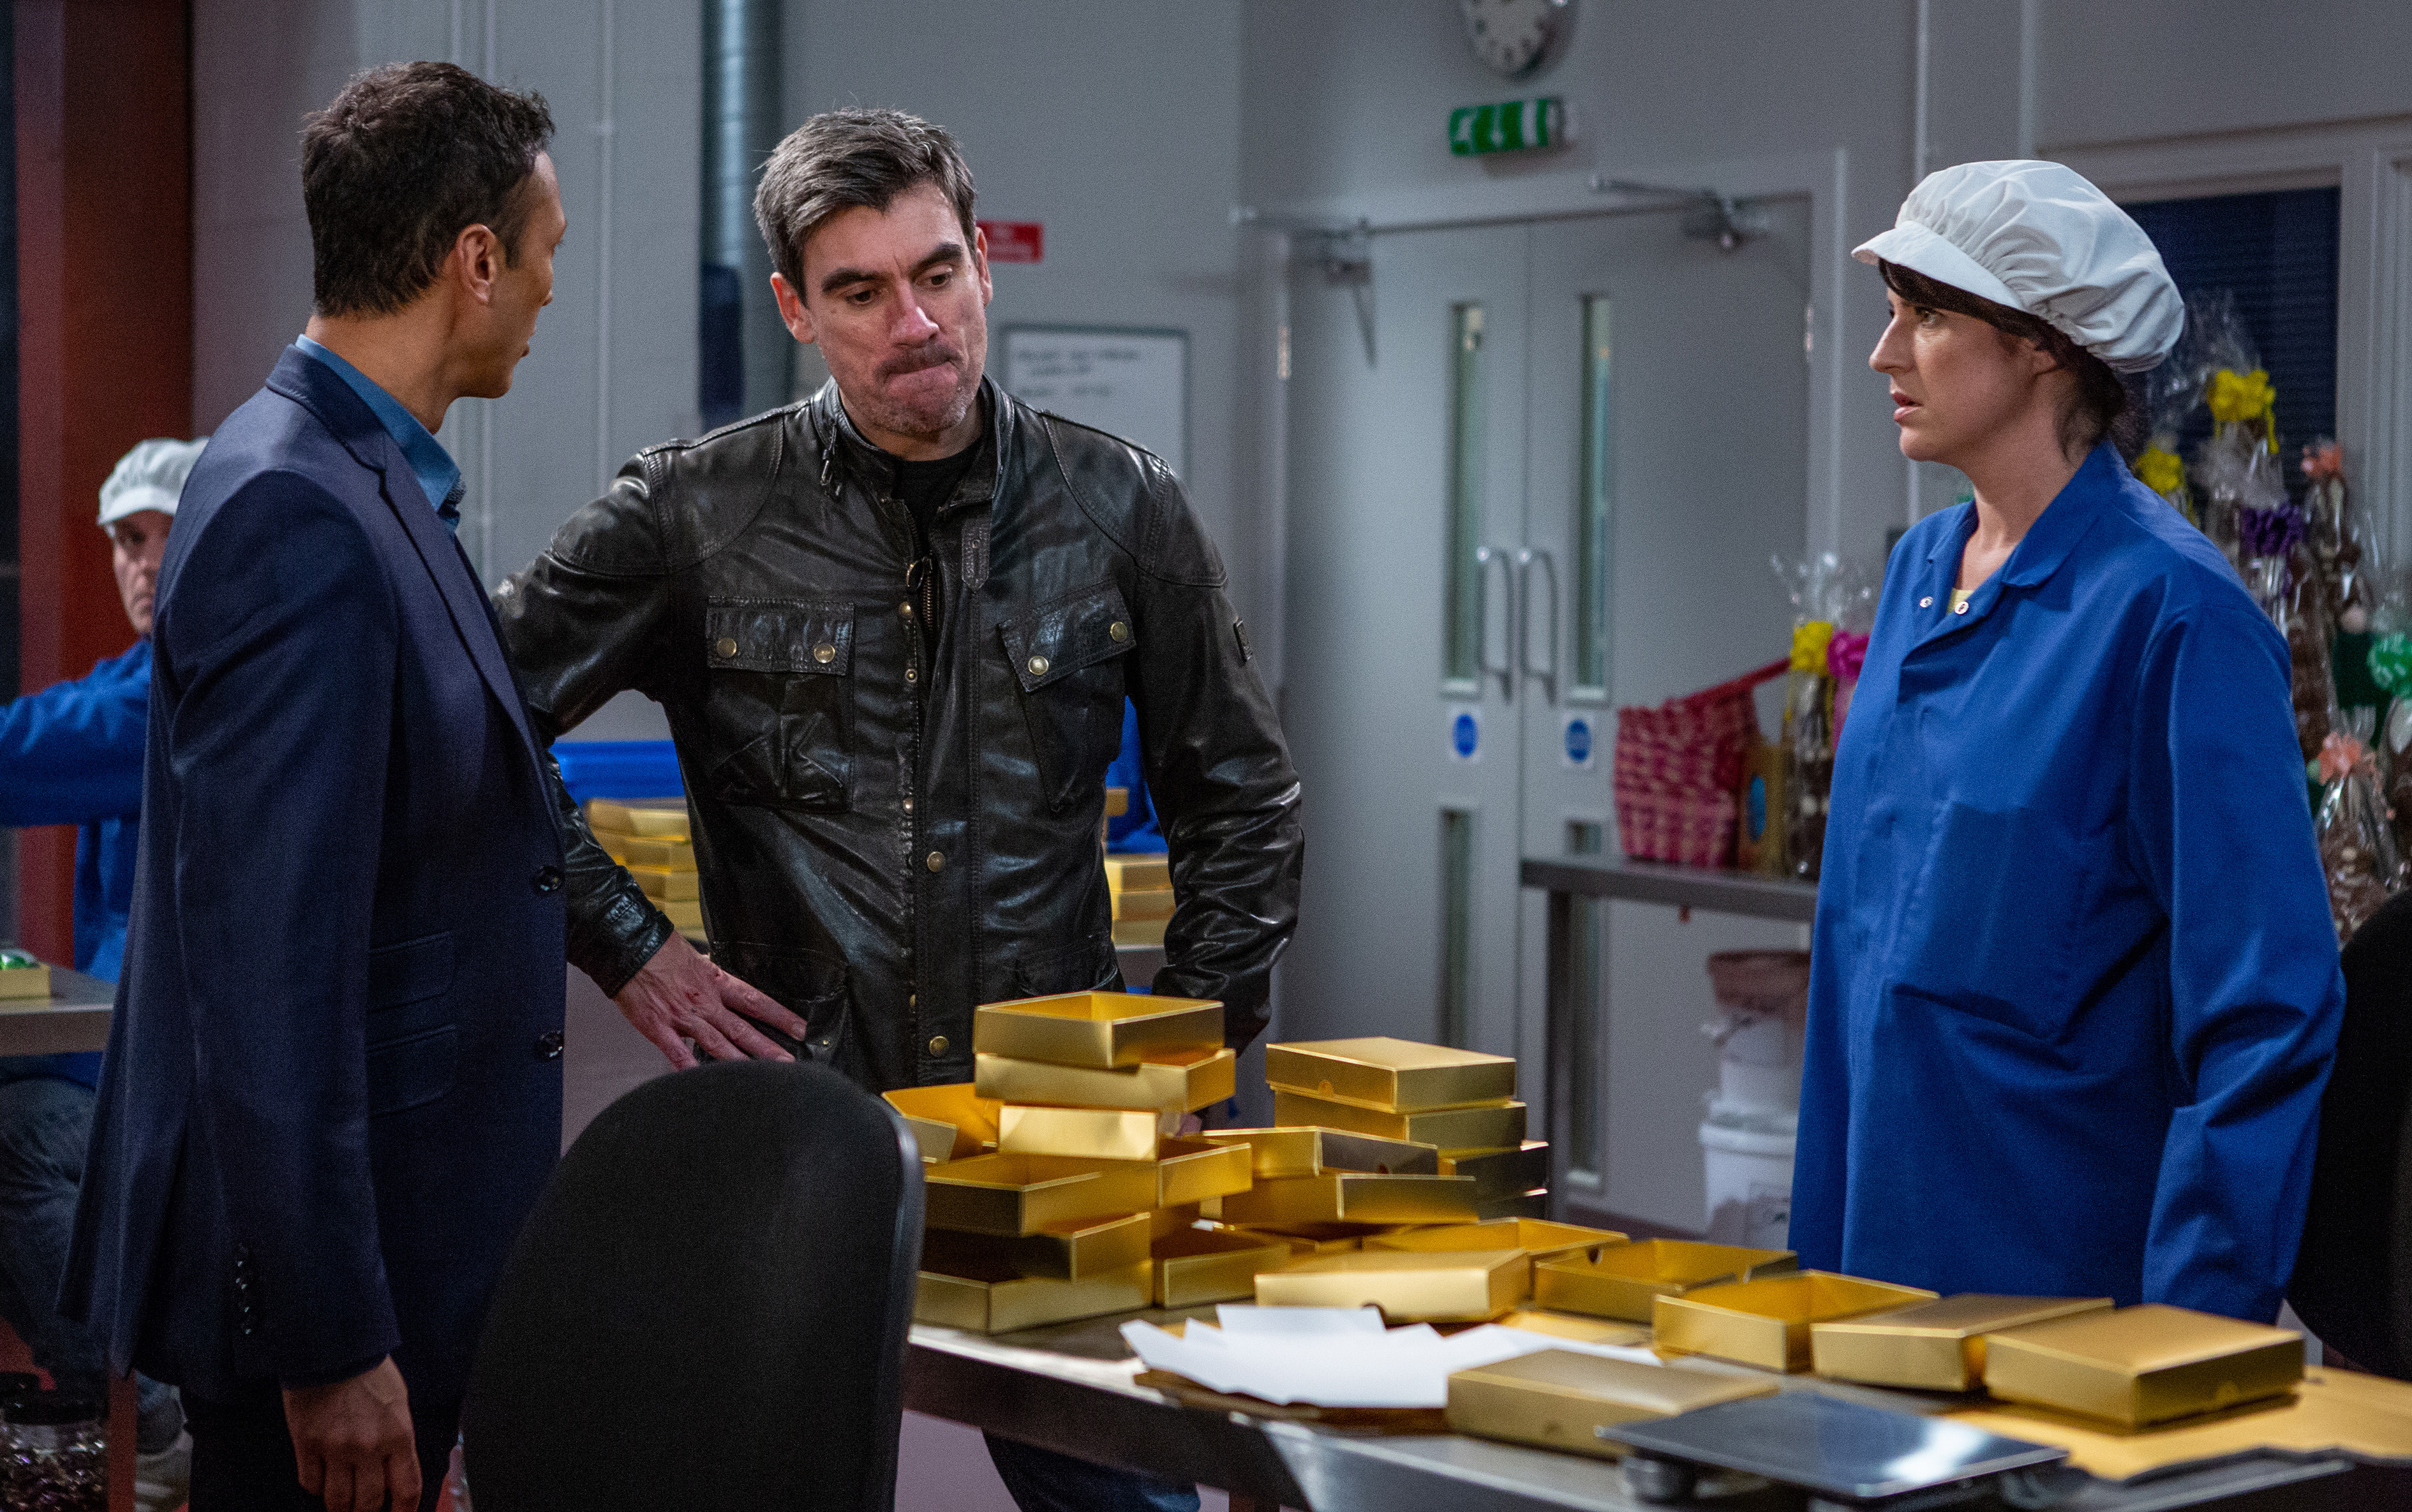 Emmerdale spoilers: Exit for Cain as he is arrested for Joe Tate's murder?